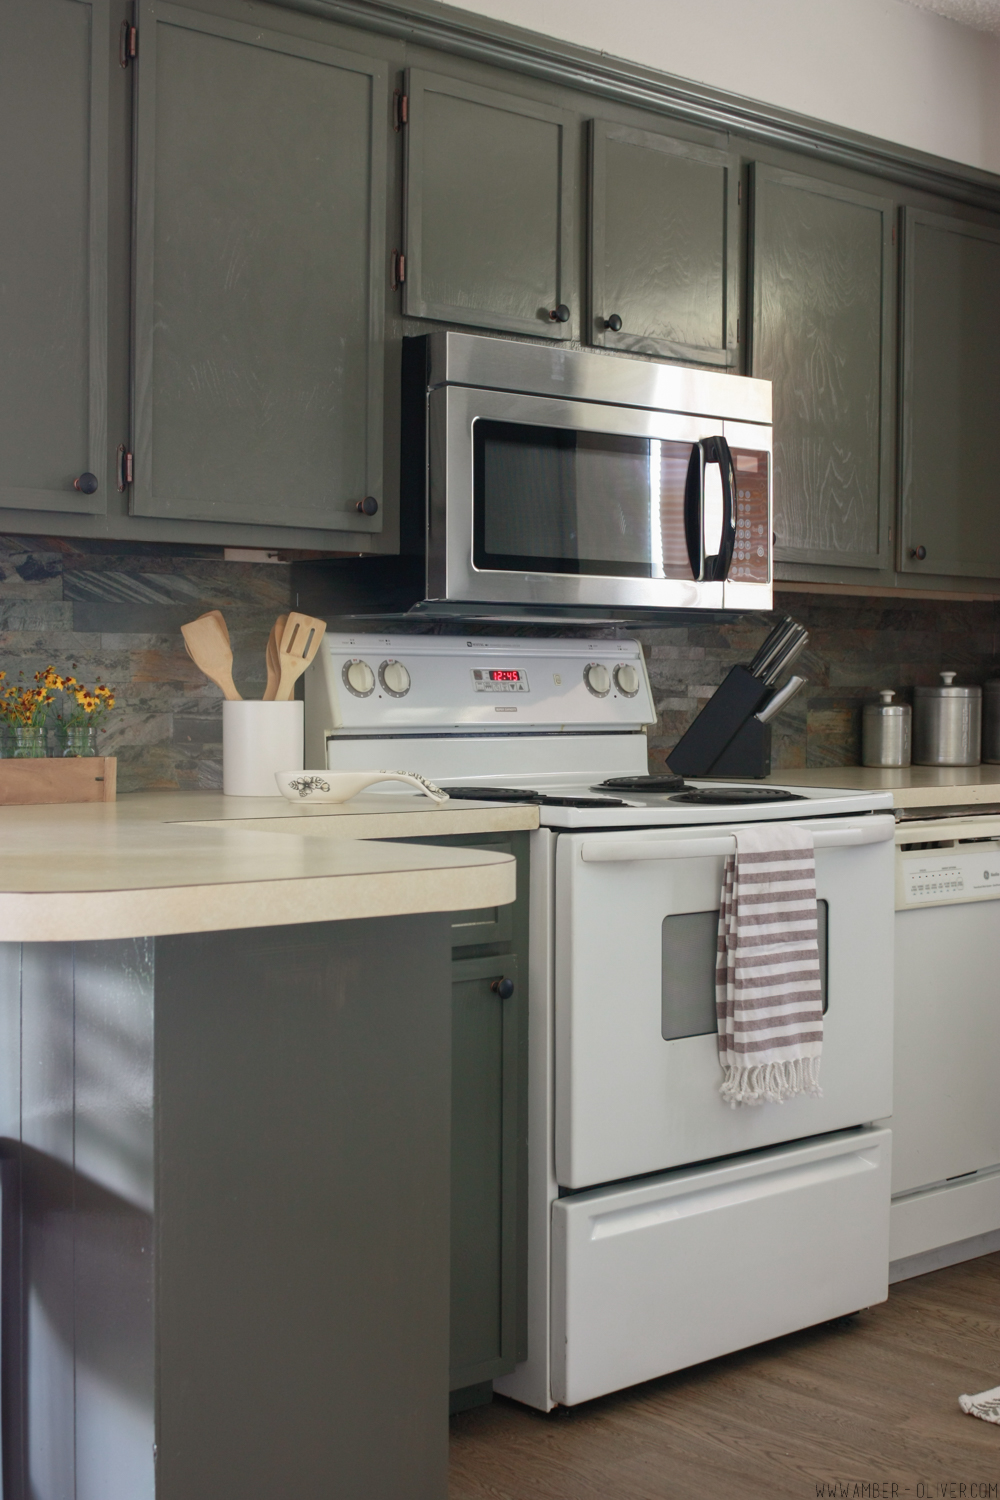 Lovely How To Update Old Kitchen Cabinets   Kitchen Remodel On A Budget! Design Inspirations